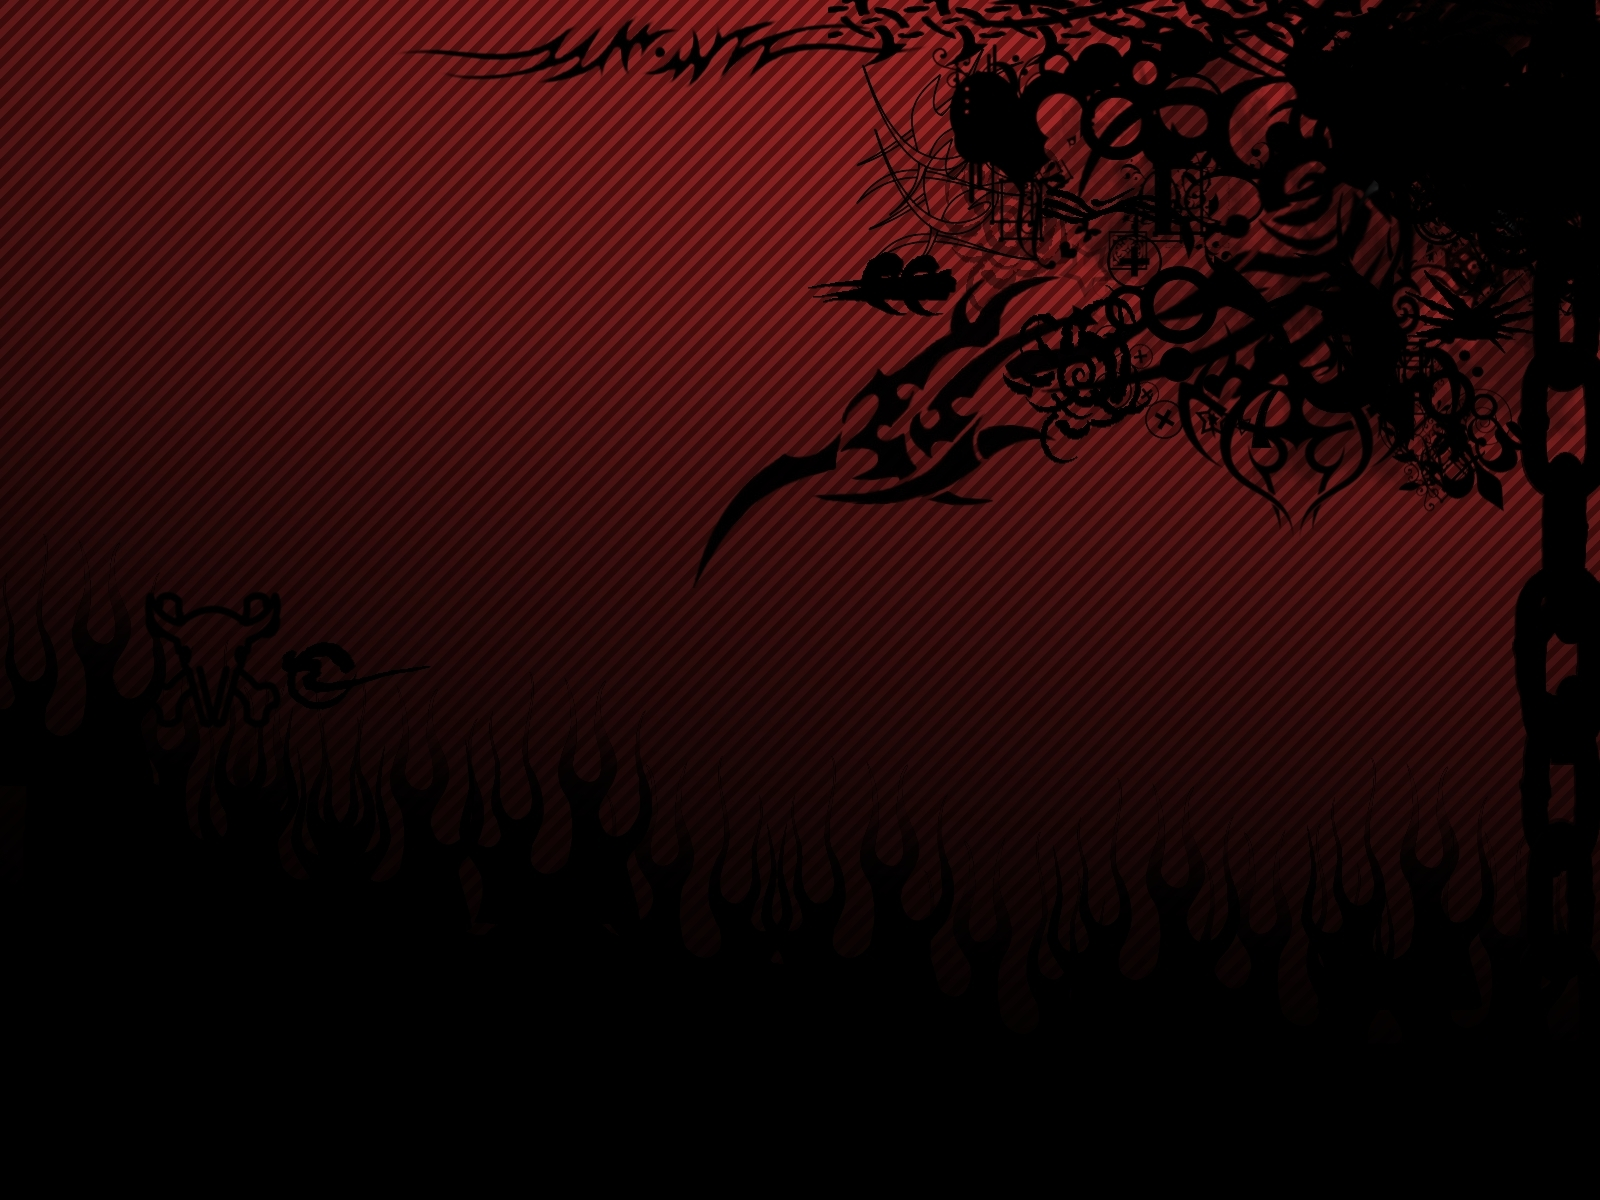 World wallpaper cool black and red background for Black red wallpaper